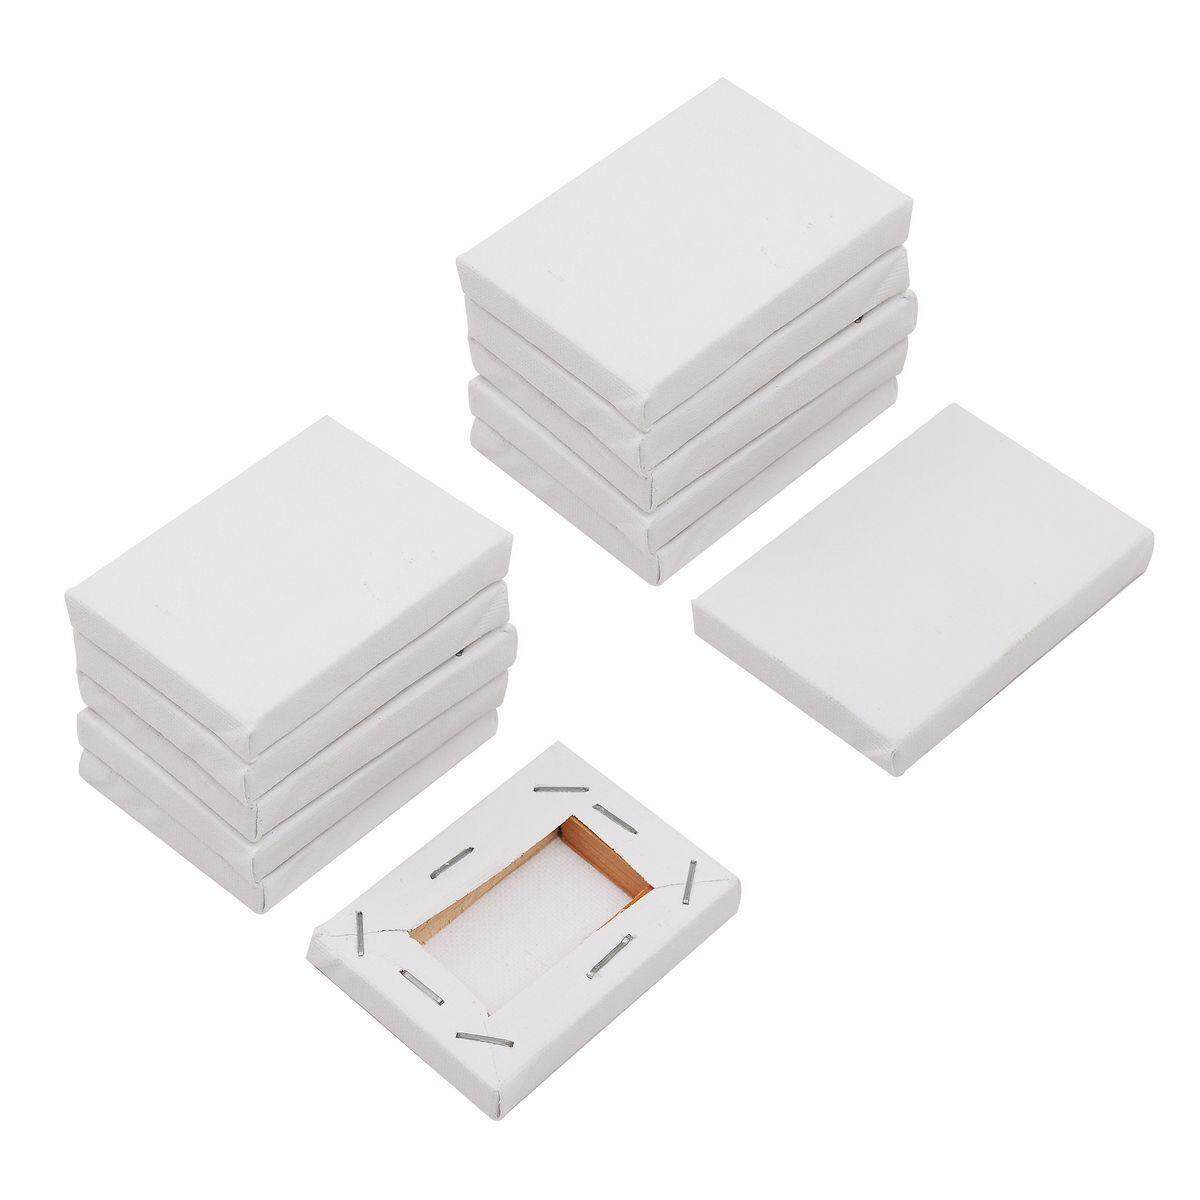 40pcs Mini Stretched Artists Canvas Small Art Board Acrylic Oil Paint 2 X 2.8 By Moonbeam.